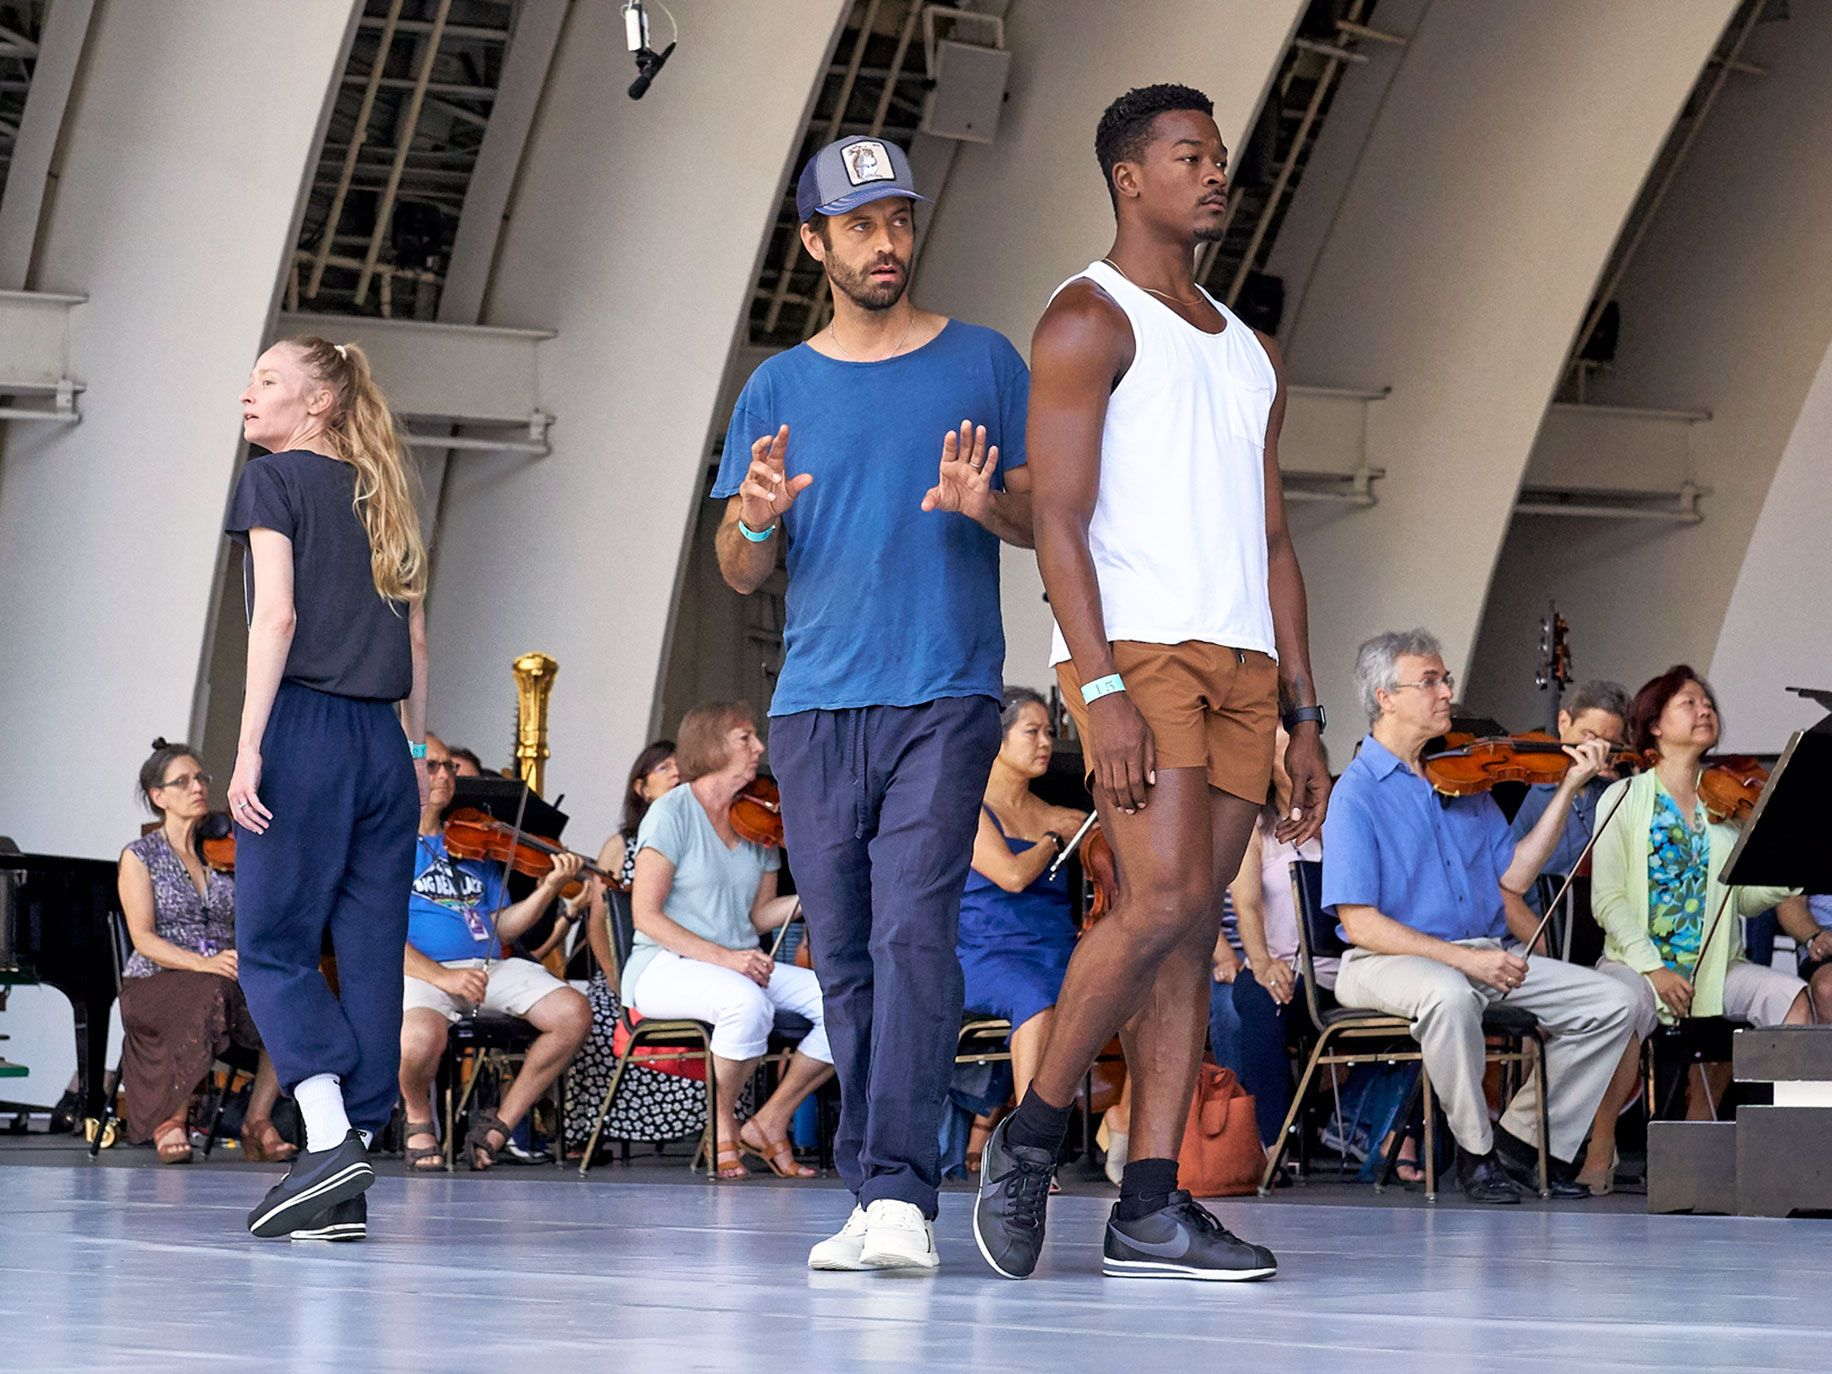 L.A. Dance Project artistic director Benjamin Millepied (center) works with the company's dancers at a rehearsal of Romeo and Juliet at the Hollywood Bowl.